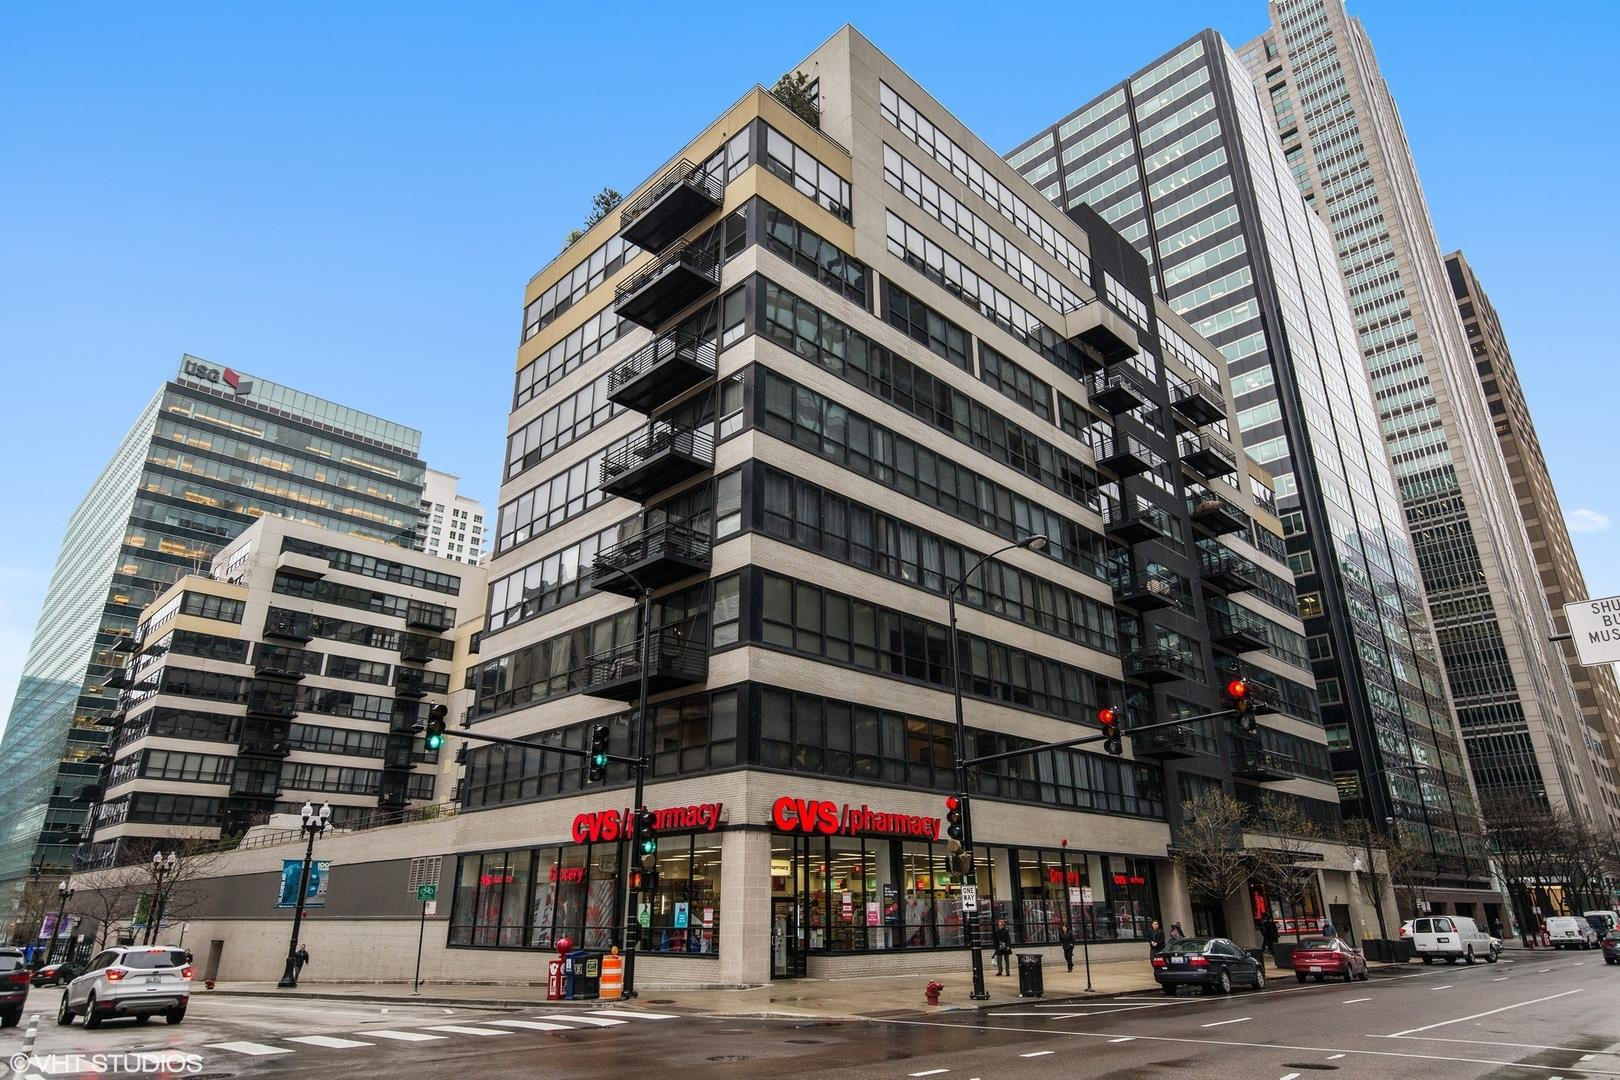 130 S CANAL Street #205, Chicago, IL 60606 - #: 11099645